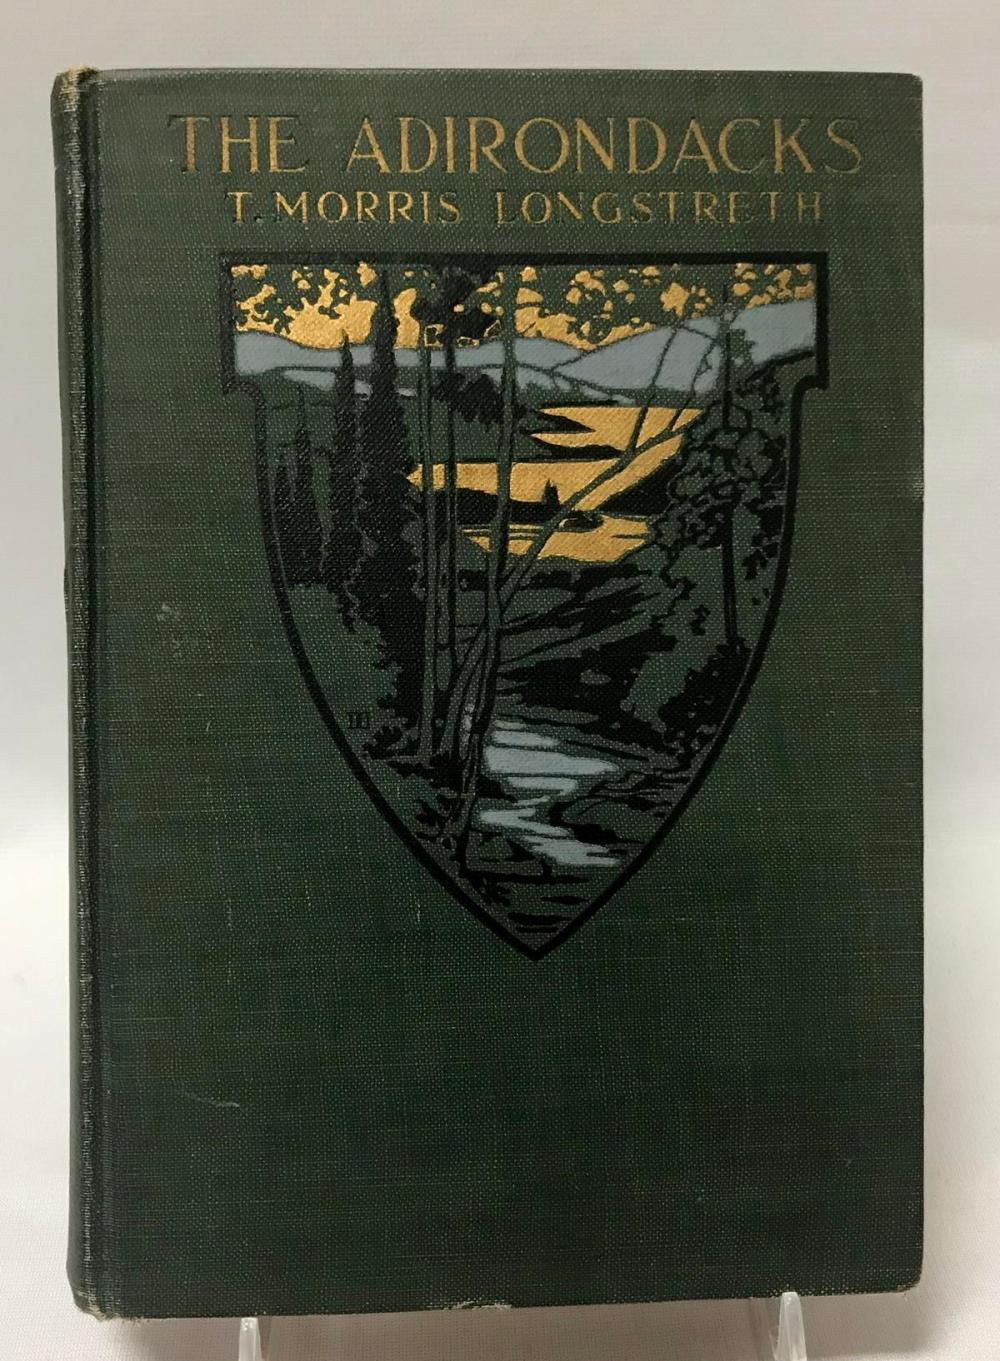 1920 The Adirondacks by T. Morris Longstreth w/ Illustrations & Maps